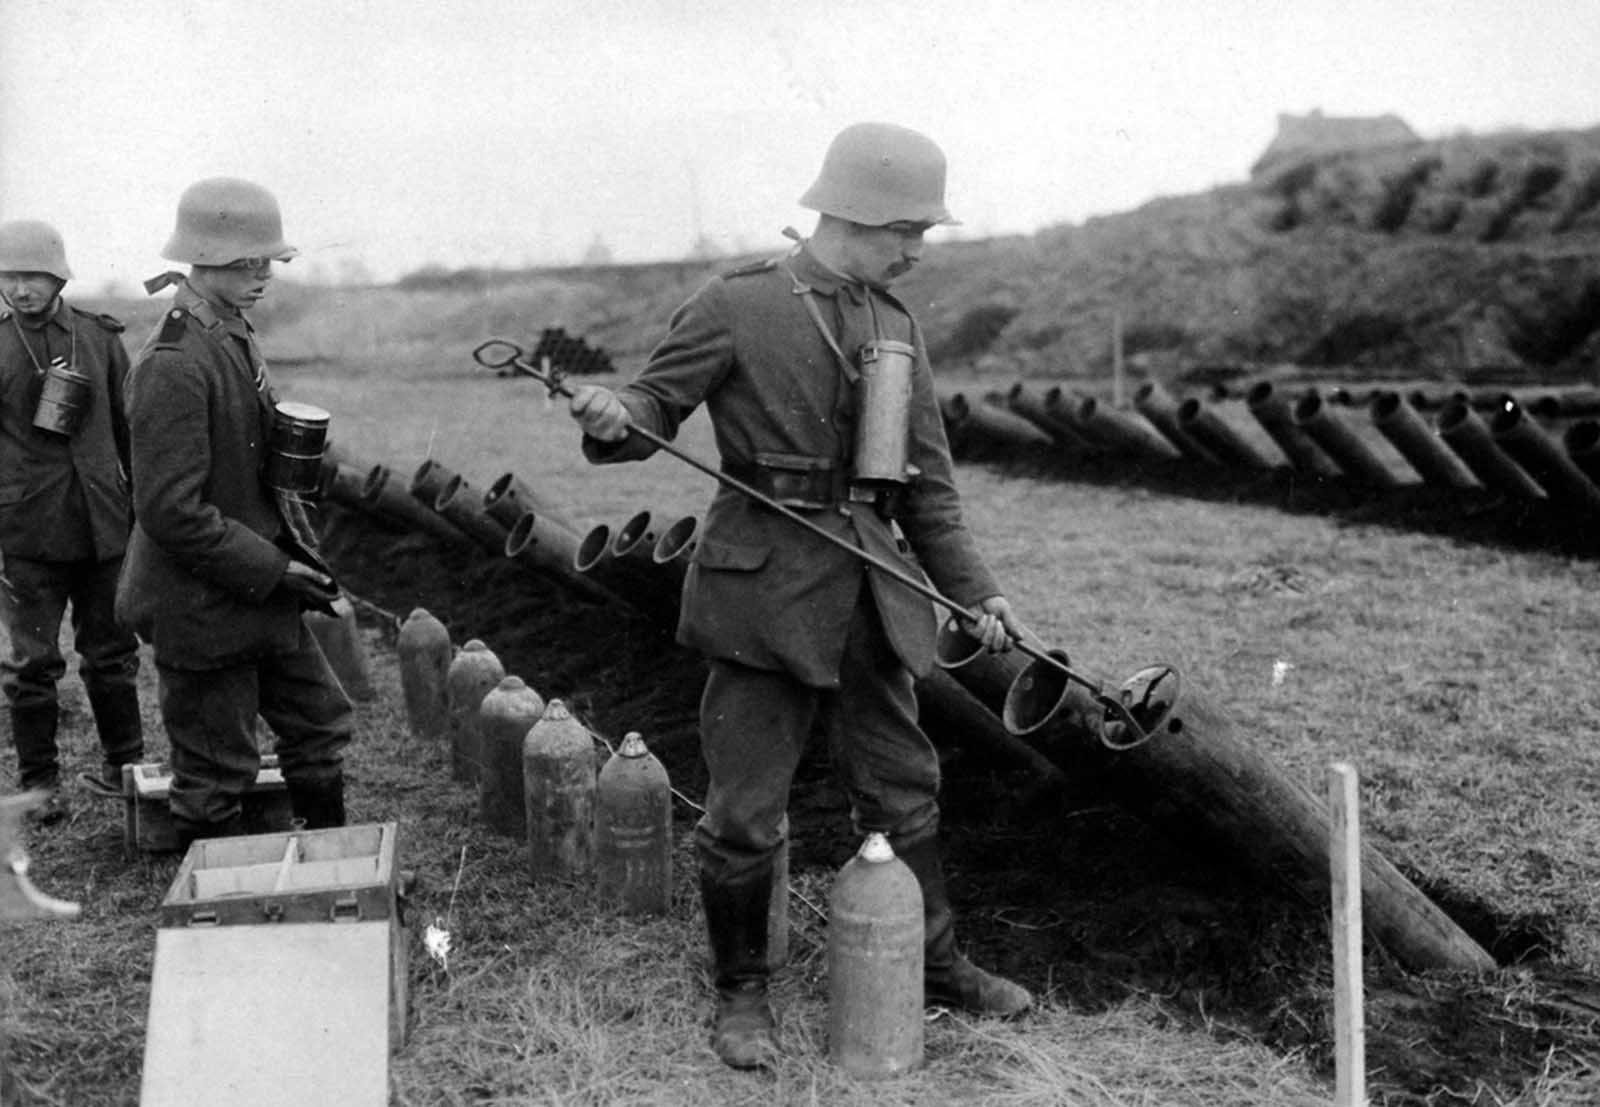 German troops load gas projectors. Attempting to exploit a loophole in international laws against the uses of gas in warfare, some German officials noted that only gas projectiles appeared to be specifically banned, and that no prohibition could be found against simply releasing deadly chemical weapons and allowing th wind to carry it to the enemy.